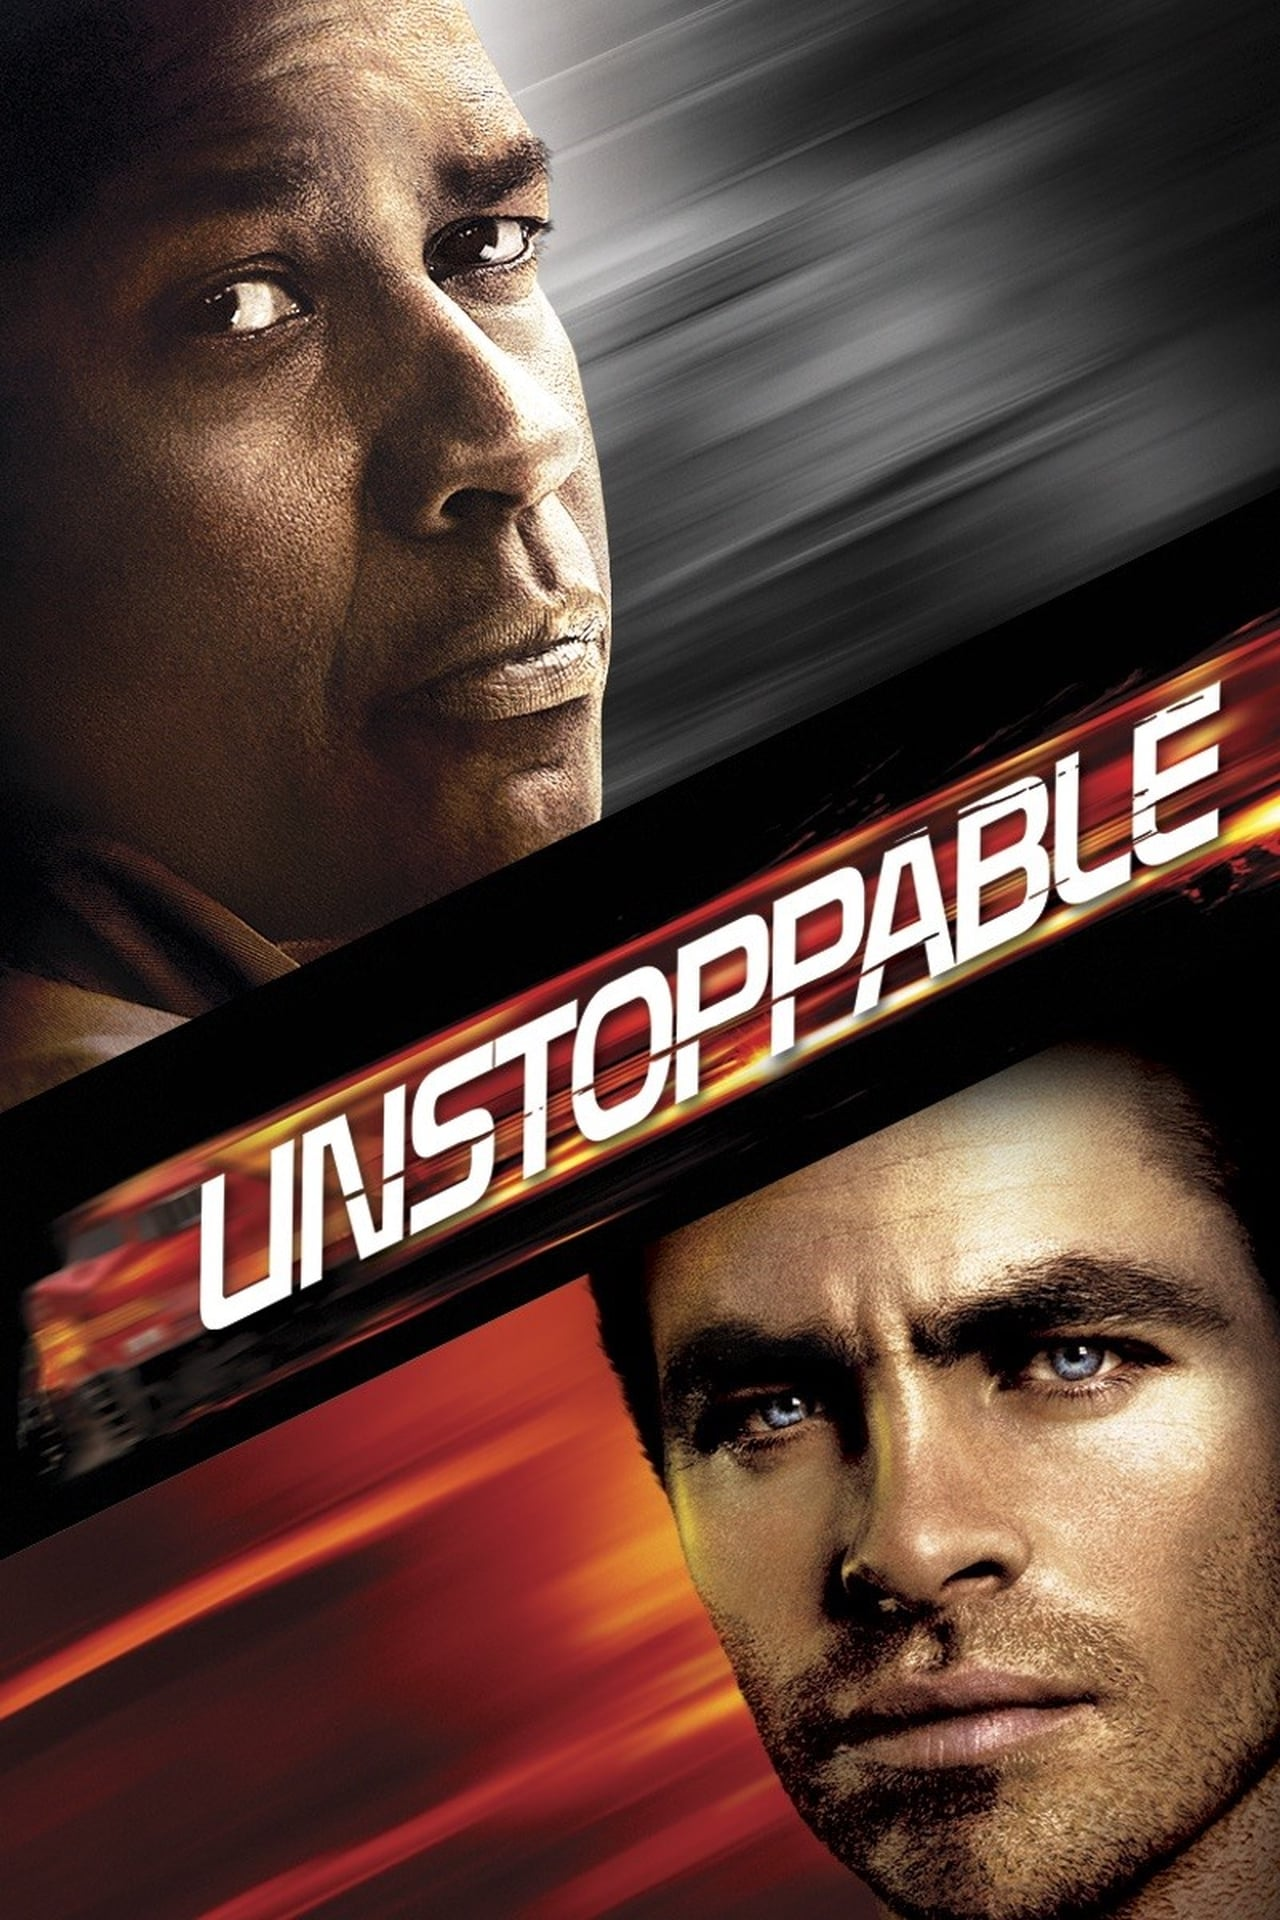 Ver Imparable 2010 Online Latino Hd Pelisplus